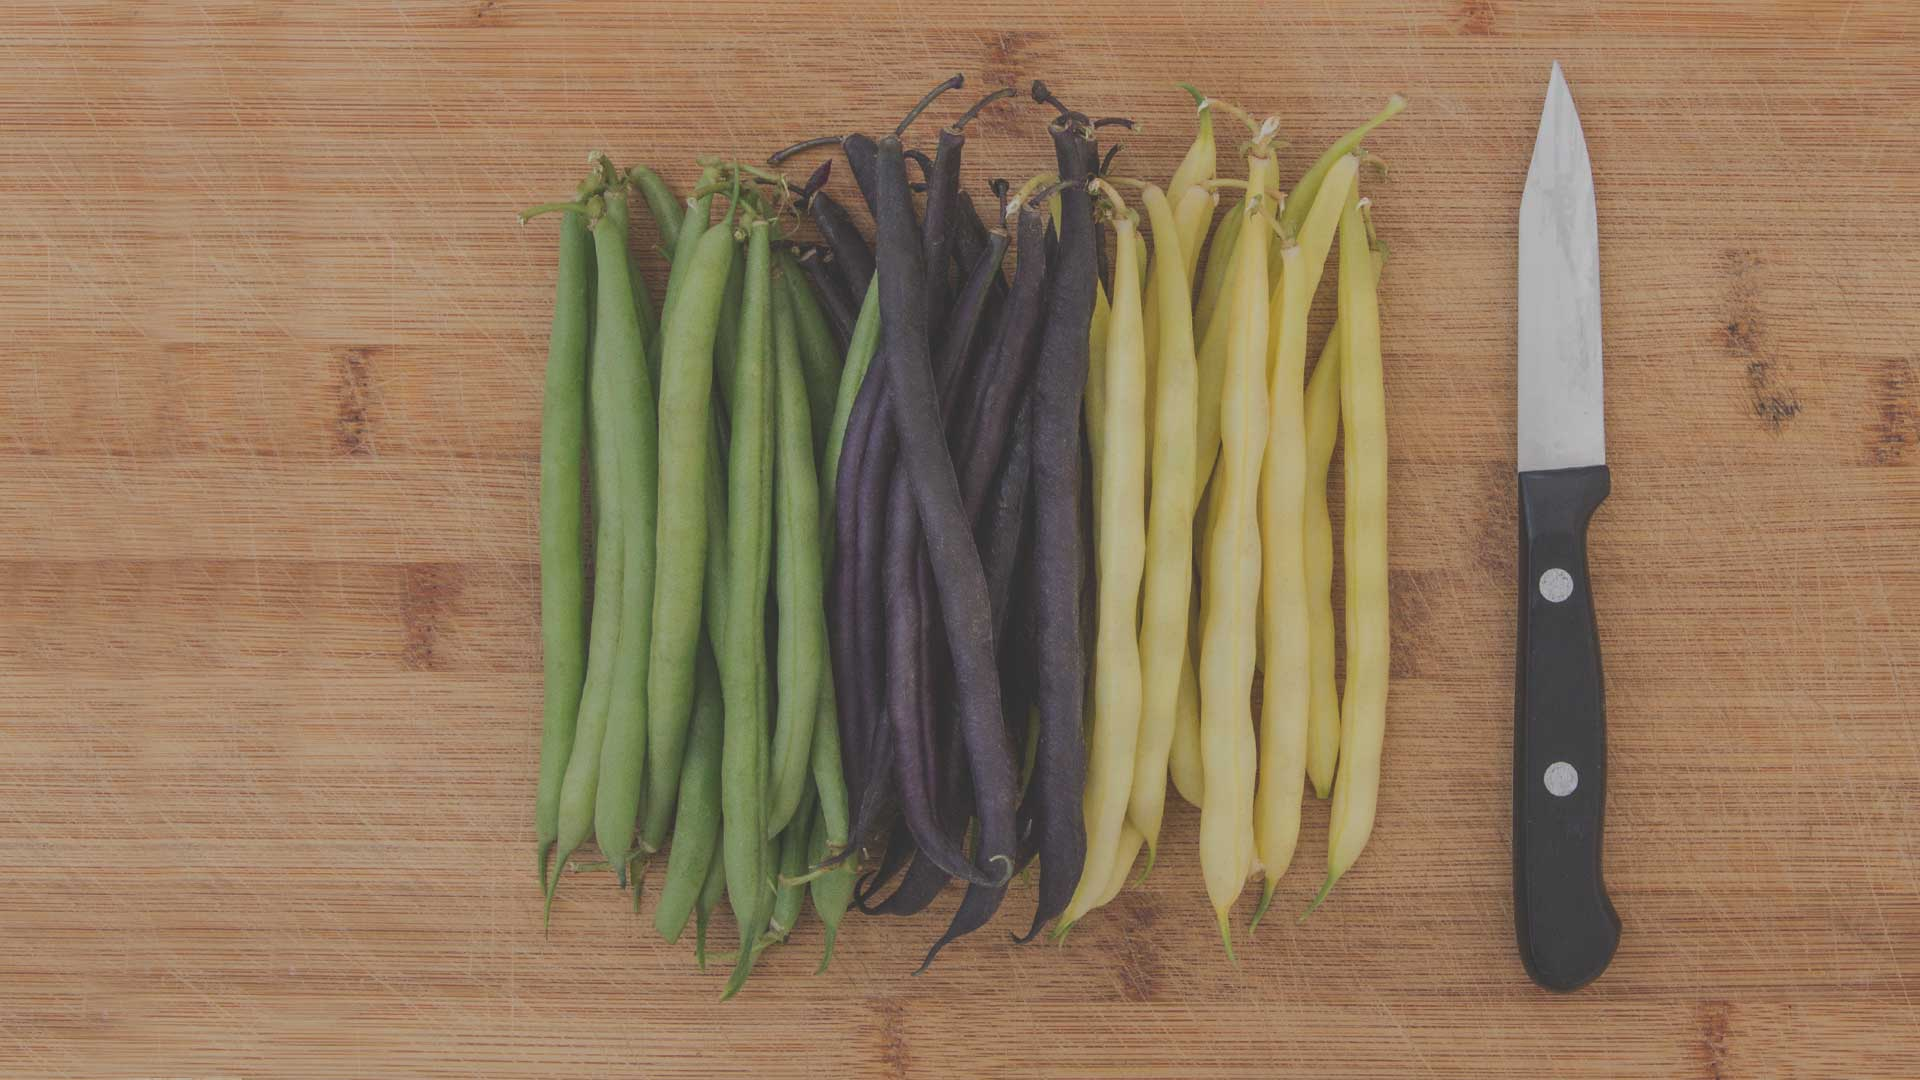 Organic Non-GMO Mardi Gras Beans from High Mowing Organic Seeds